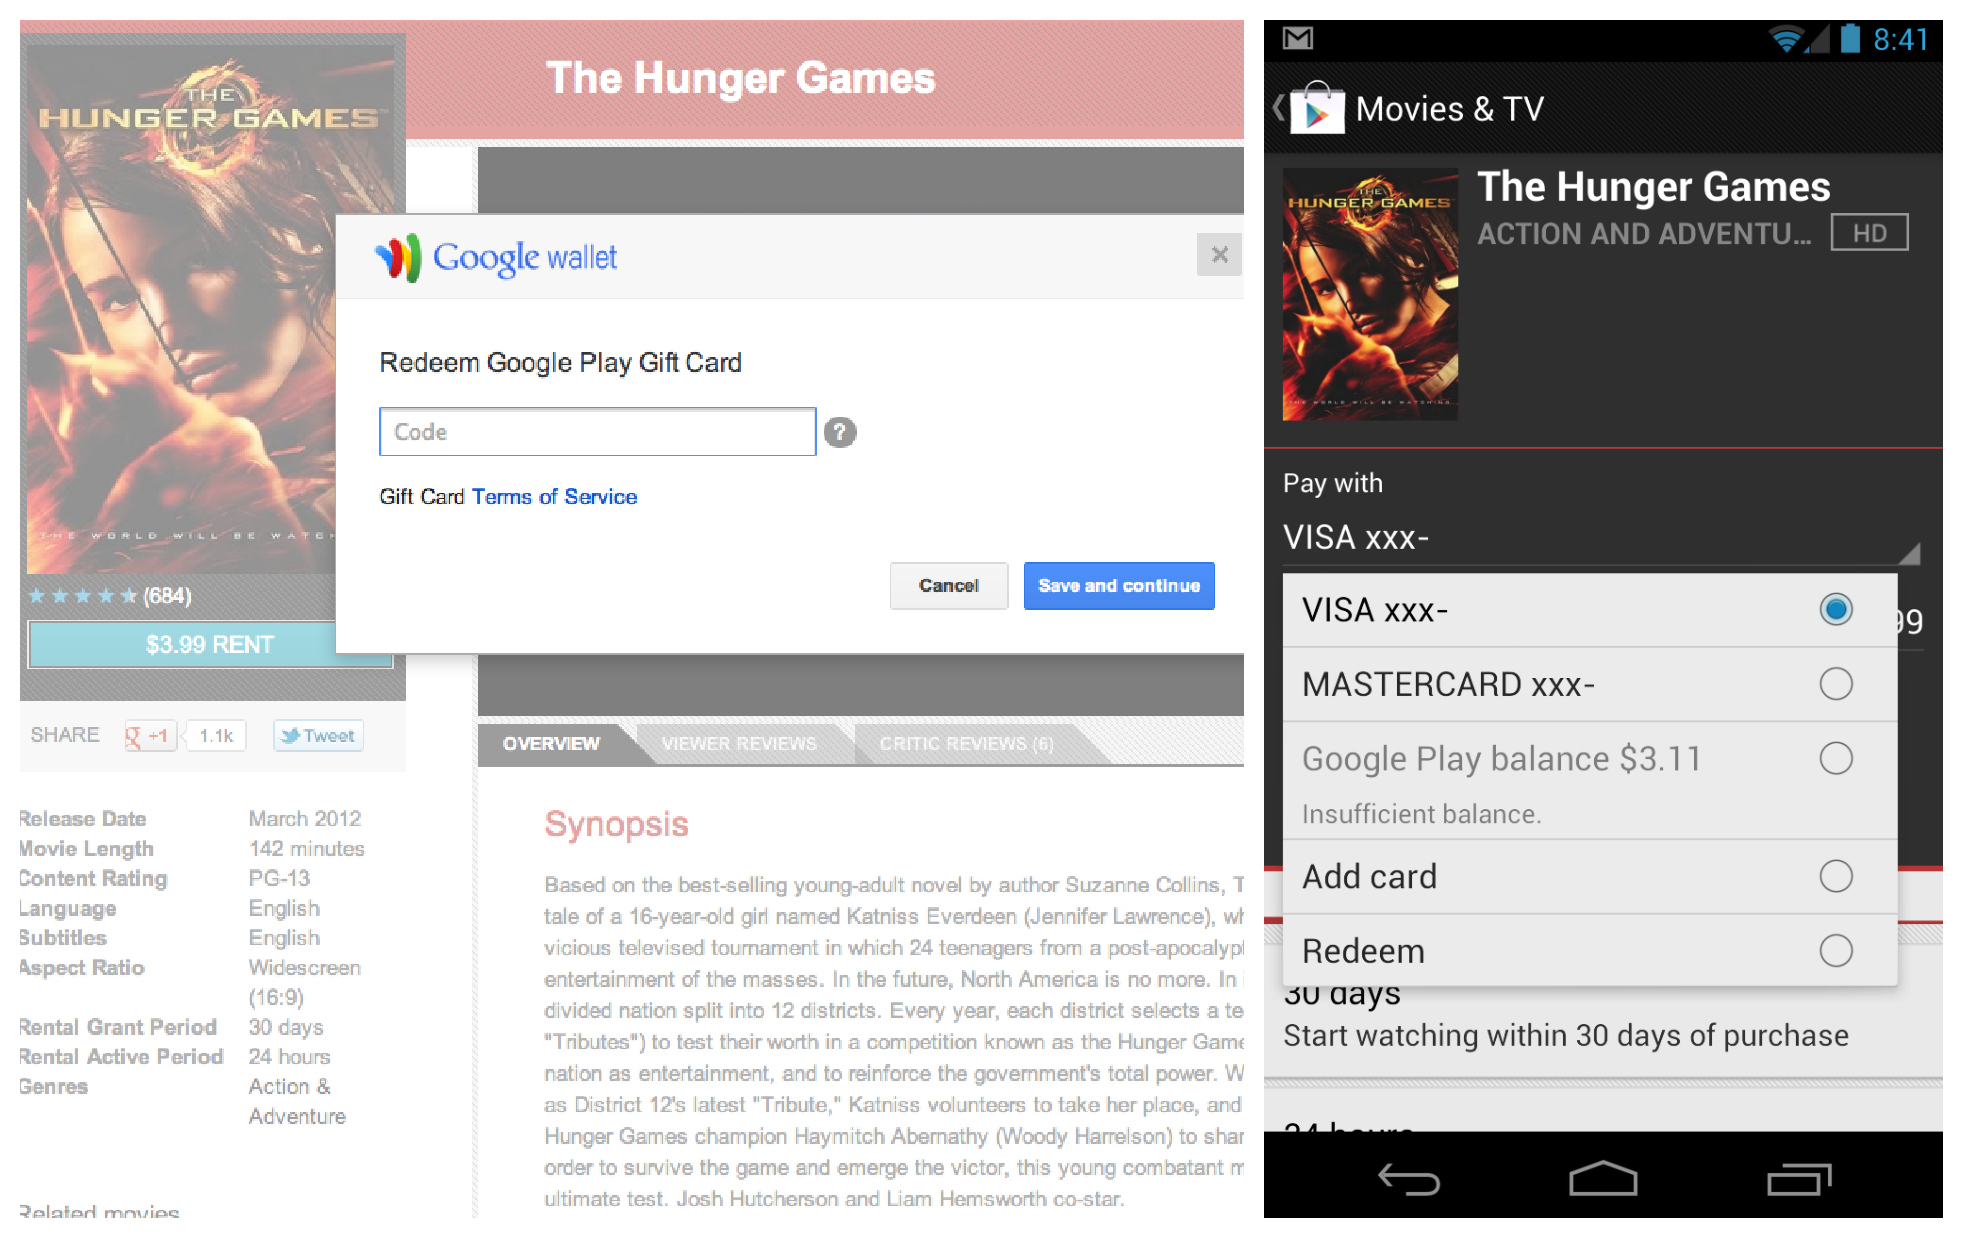 redeem google play gift card redeem showing up in play store for google play gift cards 953